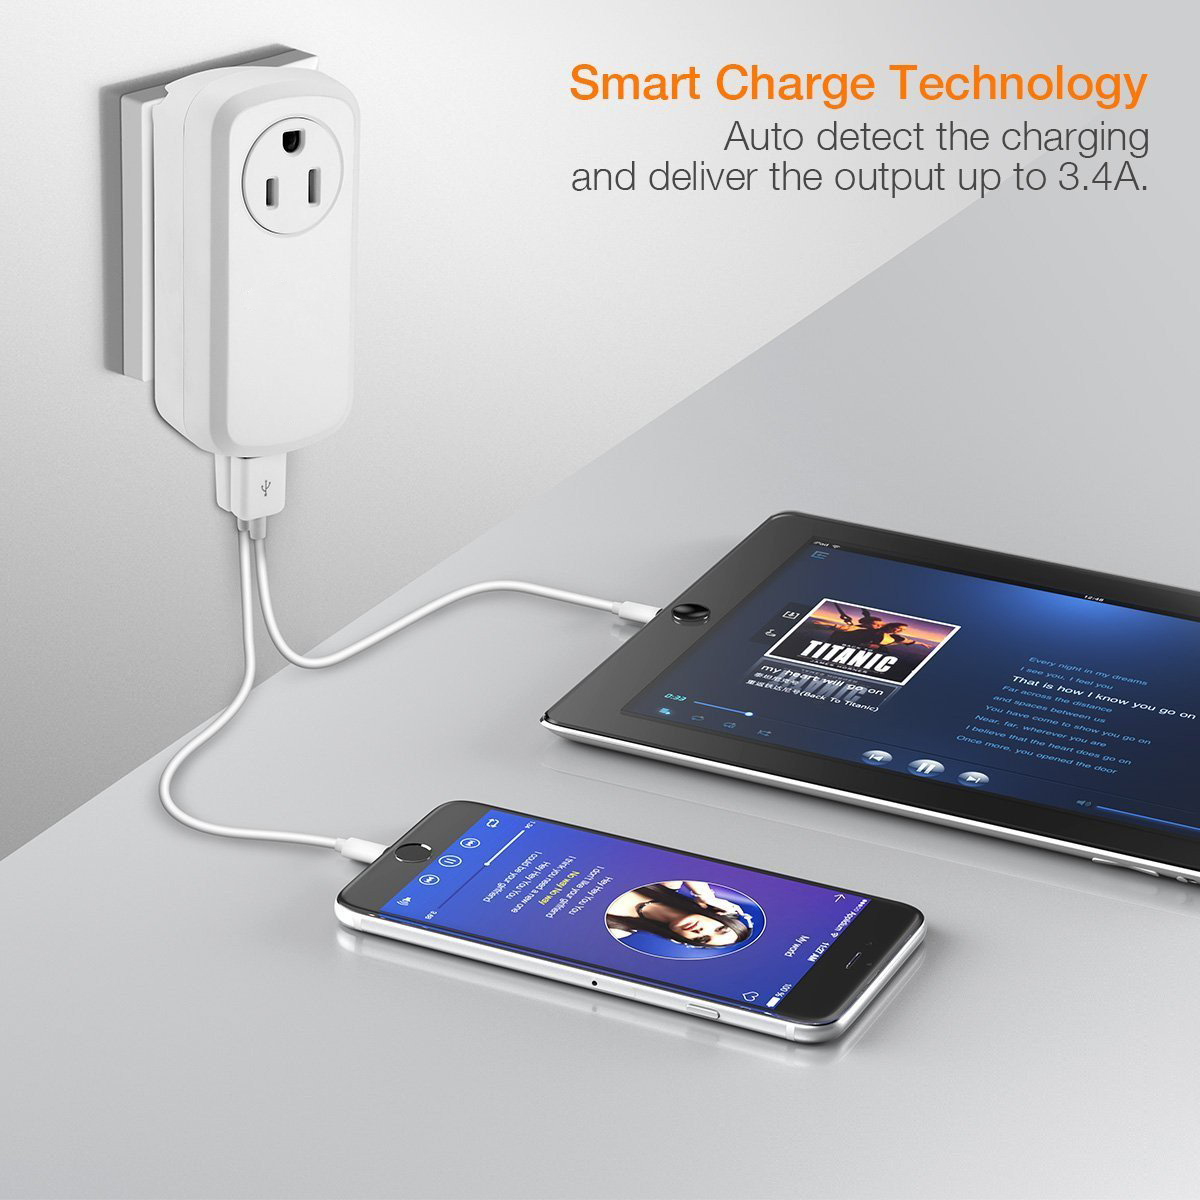 360° Electrical Outlet With 3.4A Dual Port USB Wall Charger